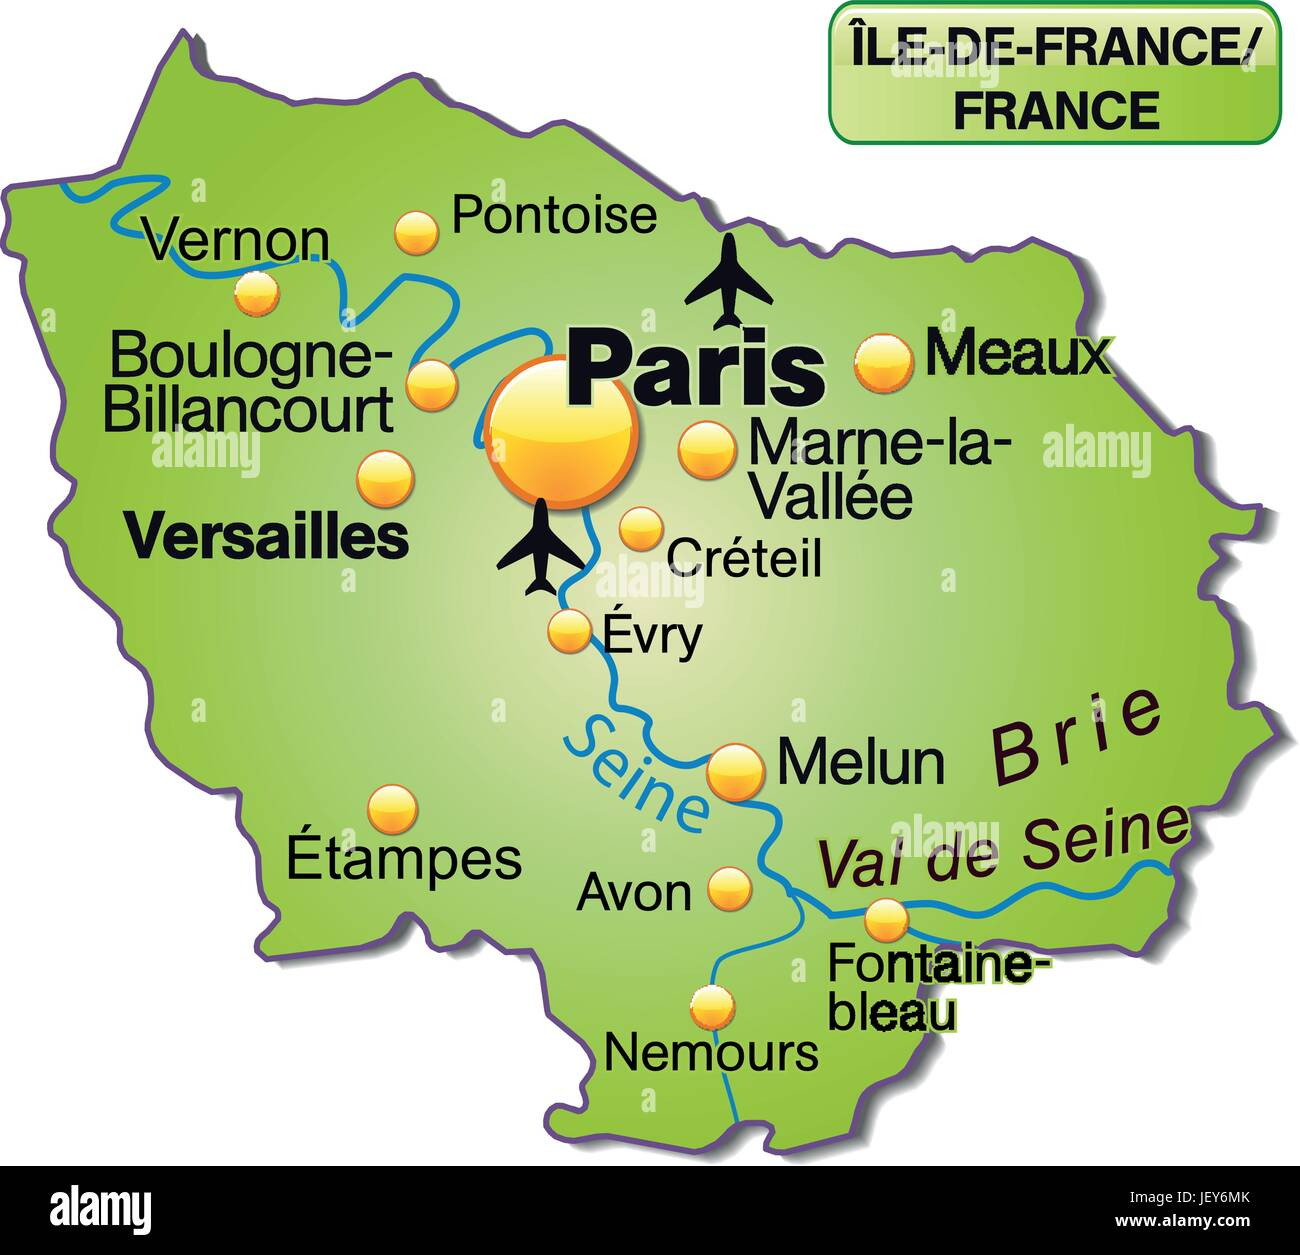 Map Of Ile De France As An Overview Map In Green Stock Vector